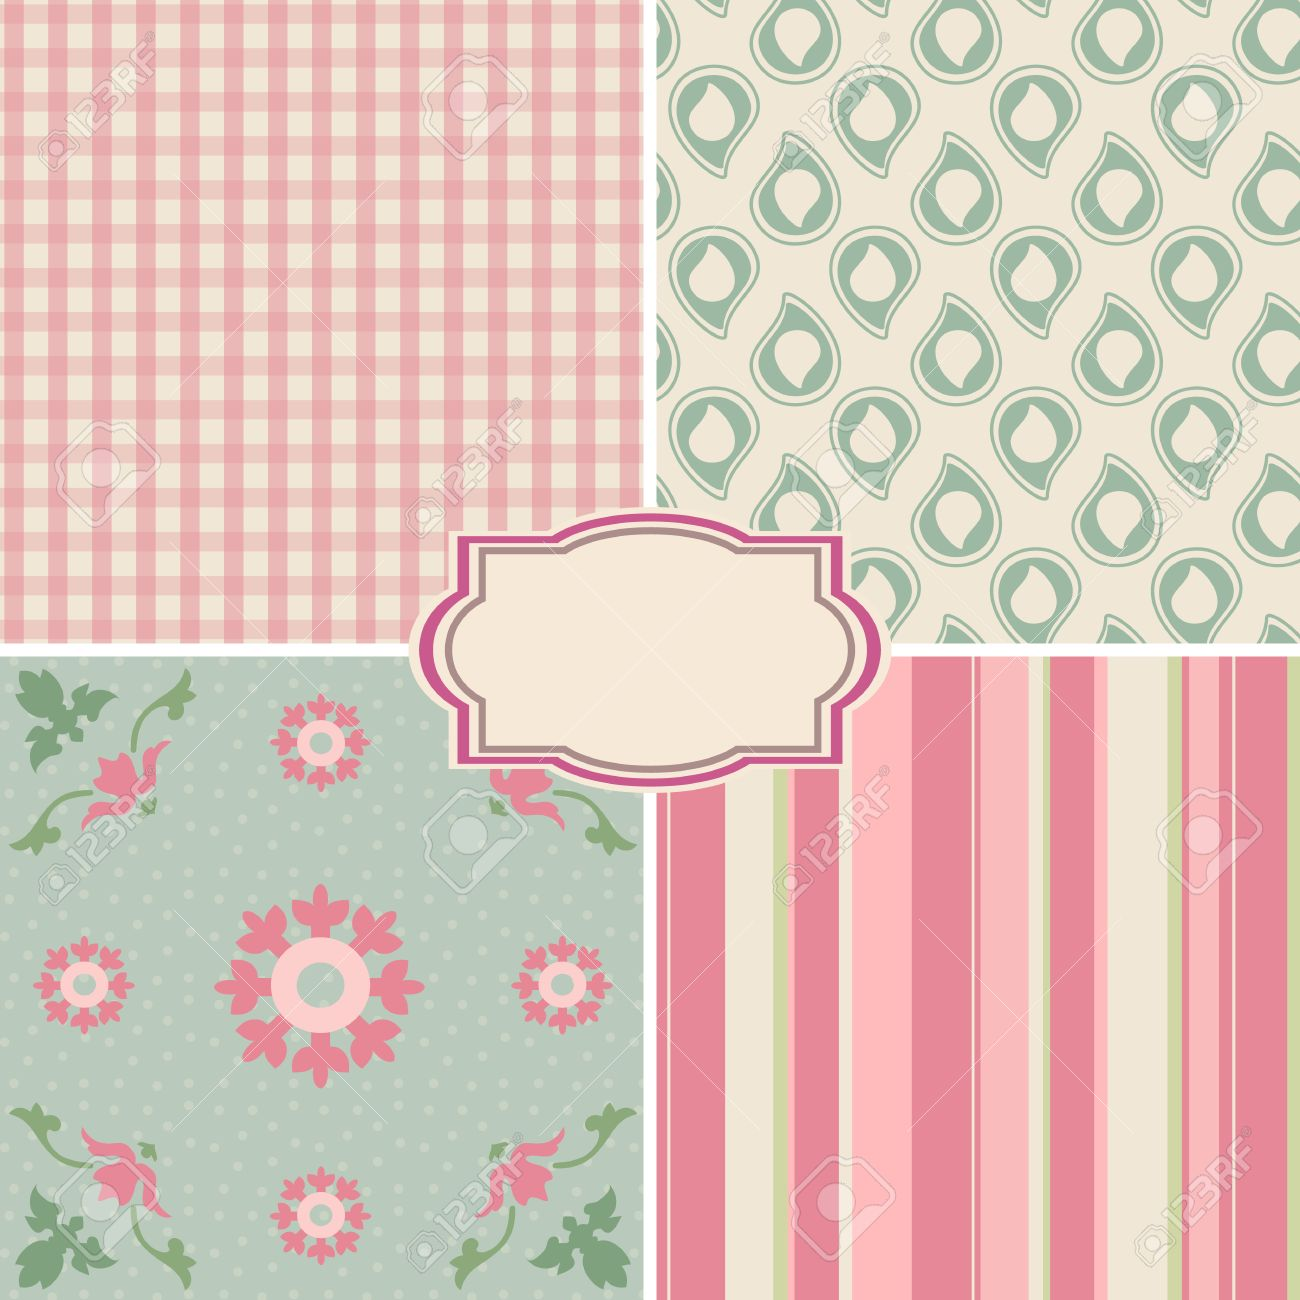 Shabby Chic Rose Patterns and seamless backgrounds Ideal for printing onto fabric and paper or scrap booking - 24193064